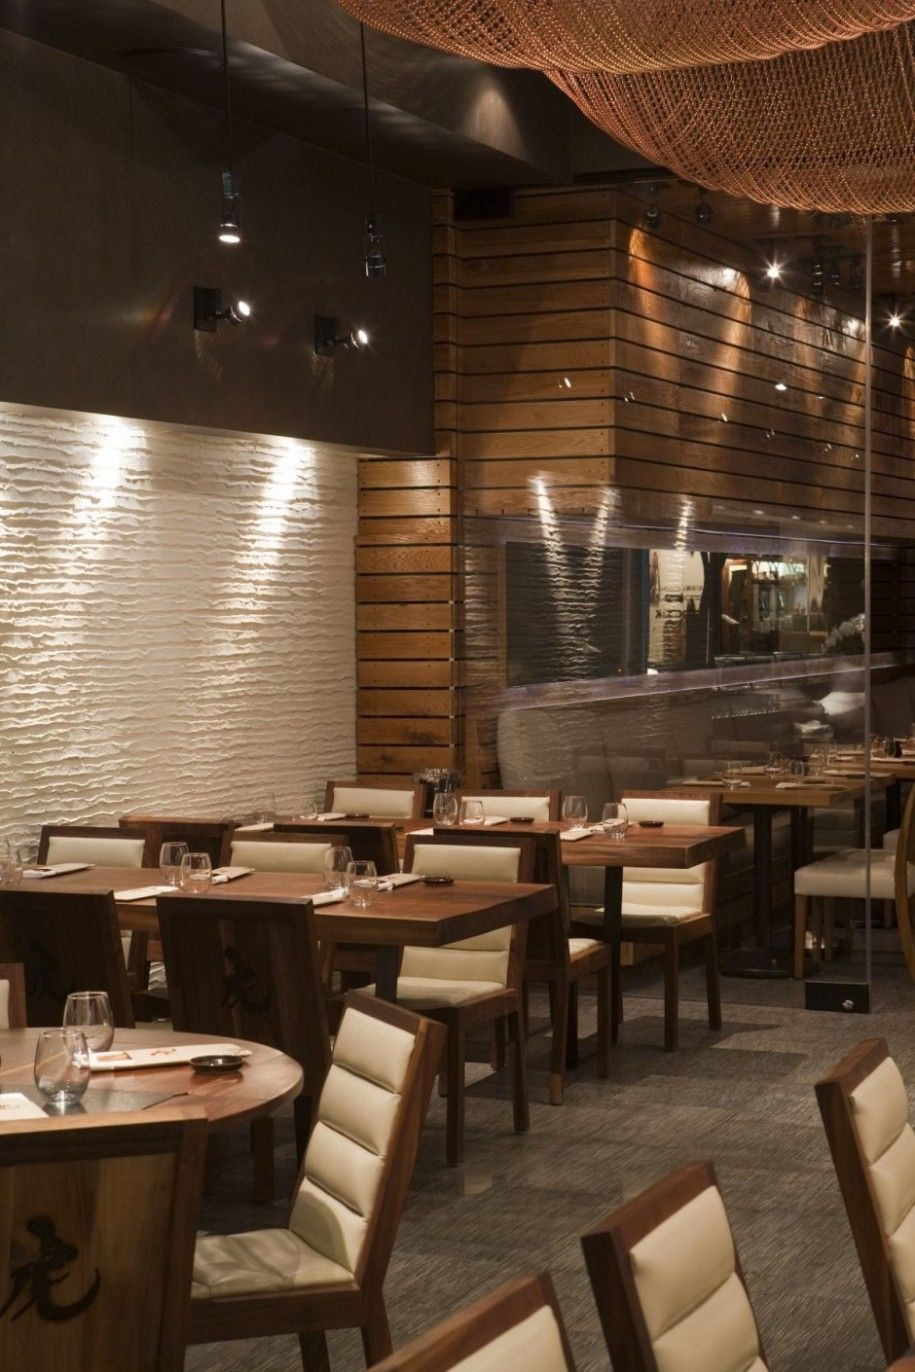 Tiger Restaurant With Wooden Wall Covering Panelling And ...